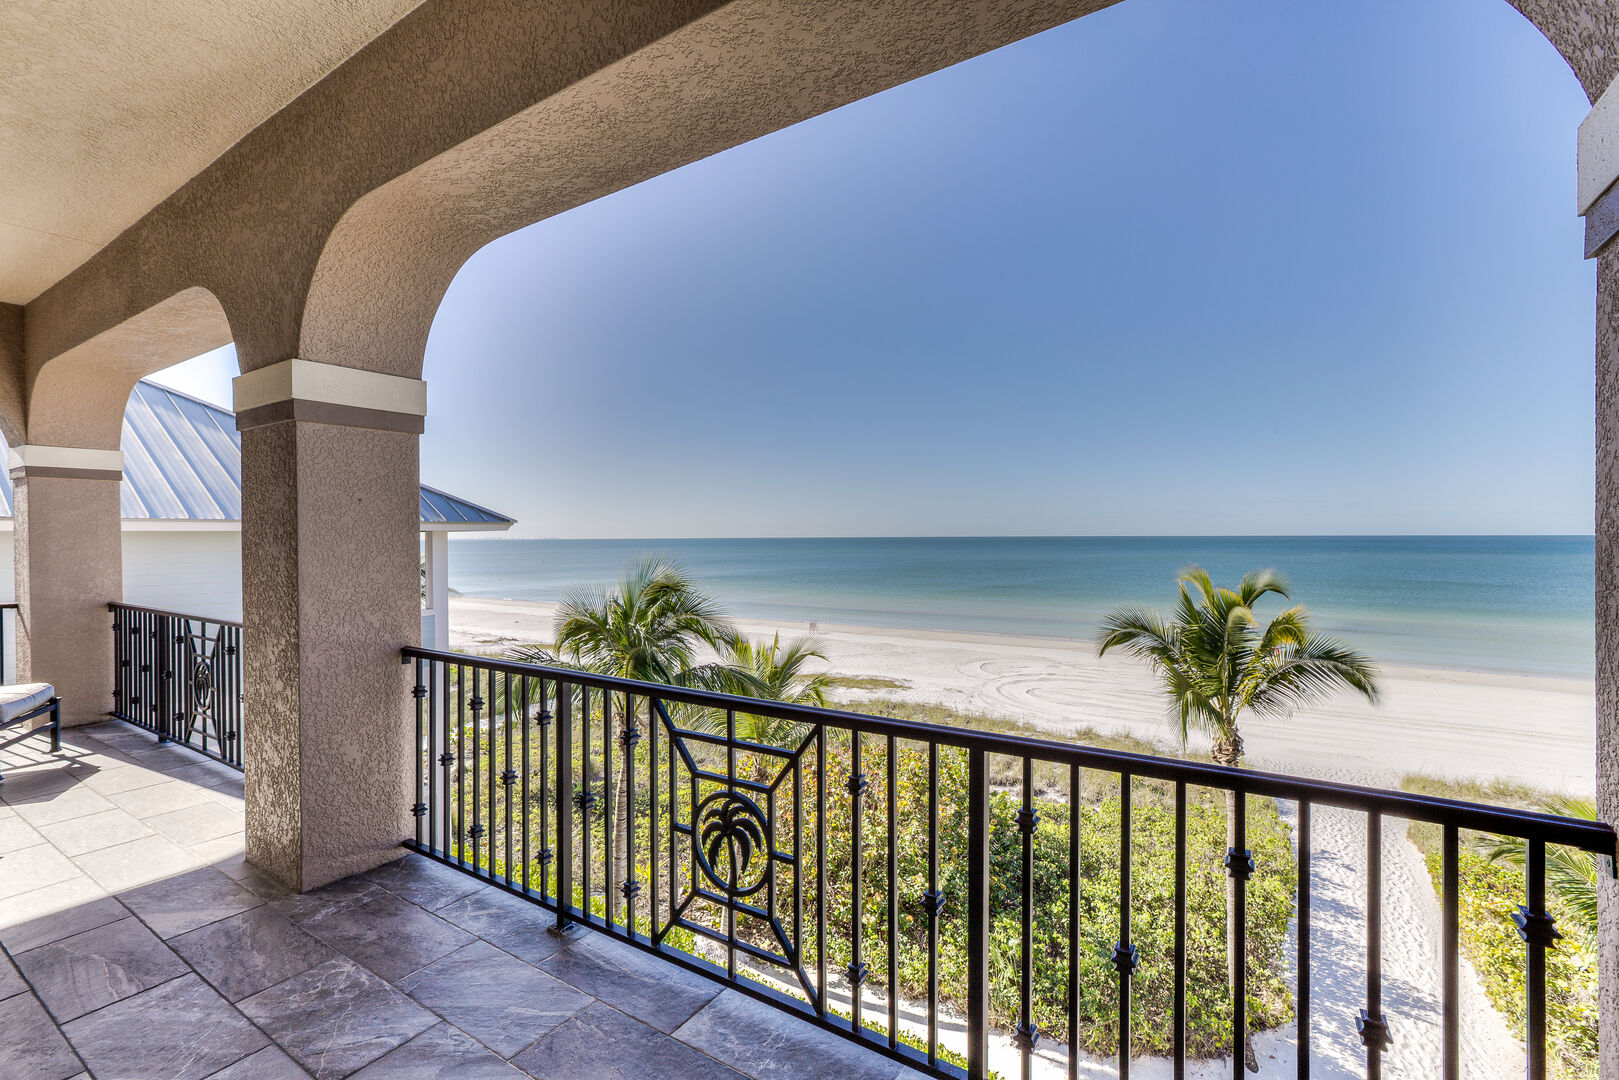 Balcony with beach views in our Fort Myers vacation home rental